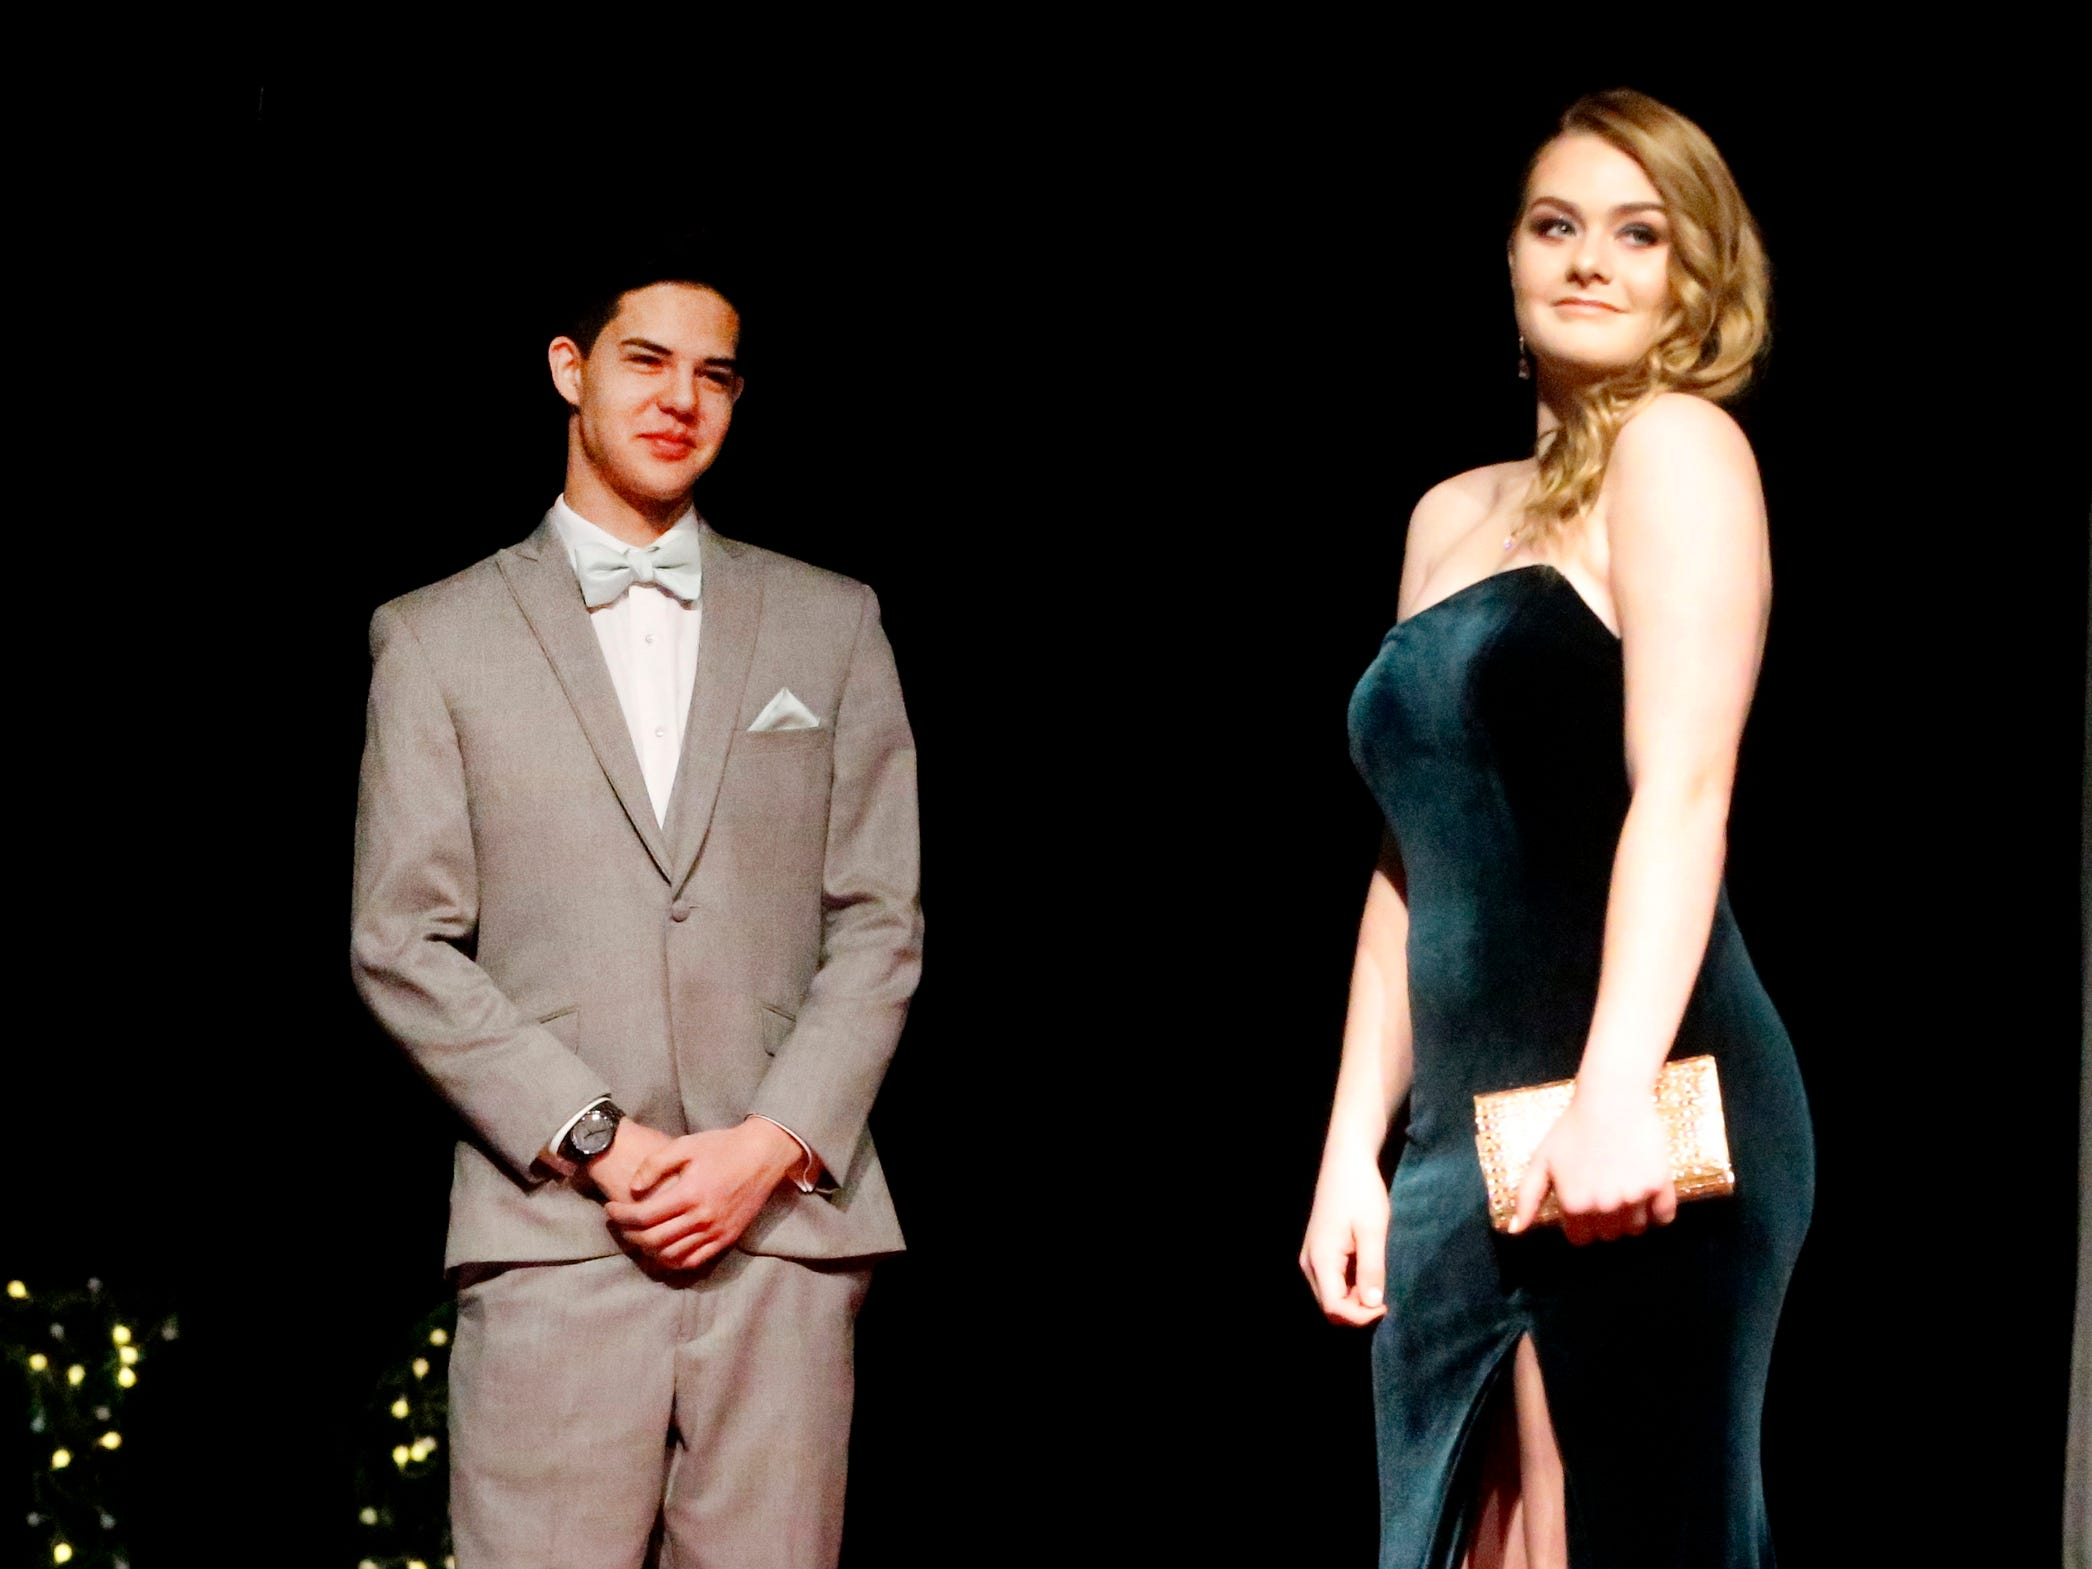 Courtney Donnelly steps forward to show off her dress as Tristian Cunningham waits to show off his tux during the Siegel Prom Fashion show on Thursday, Feb. 14, 2019.